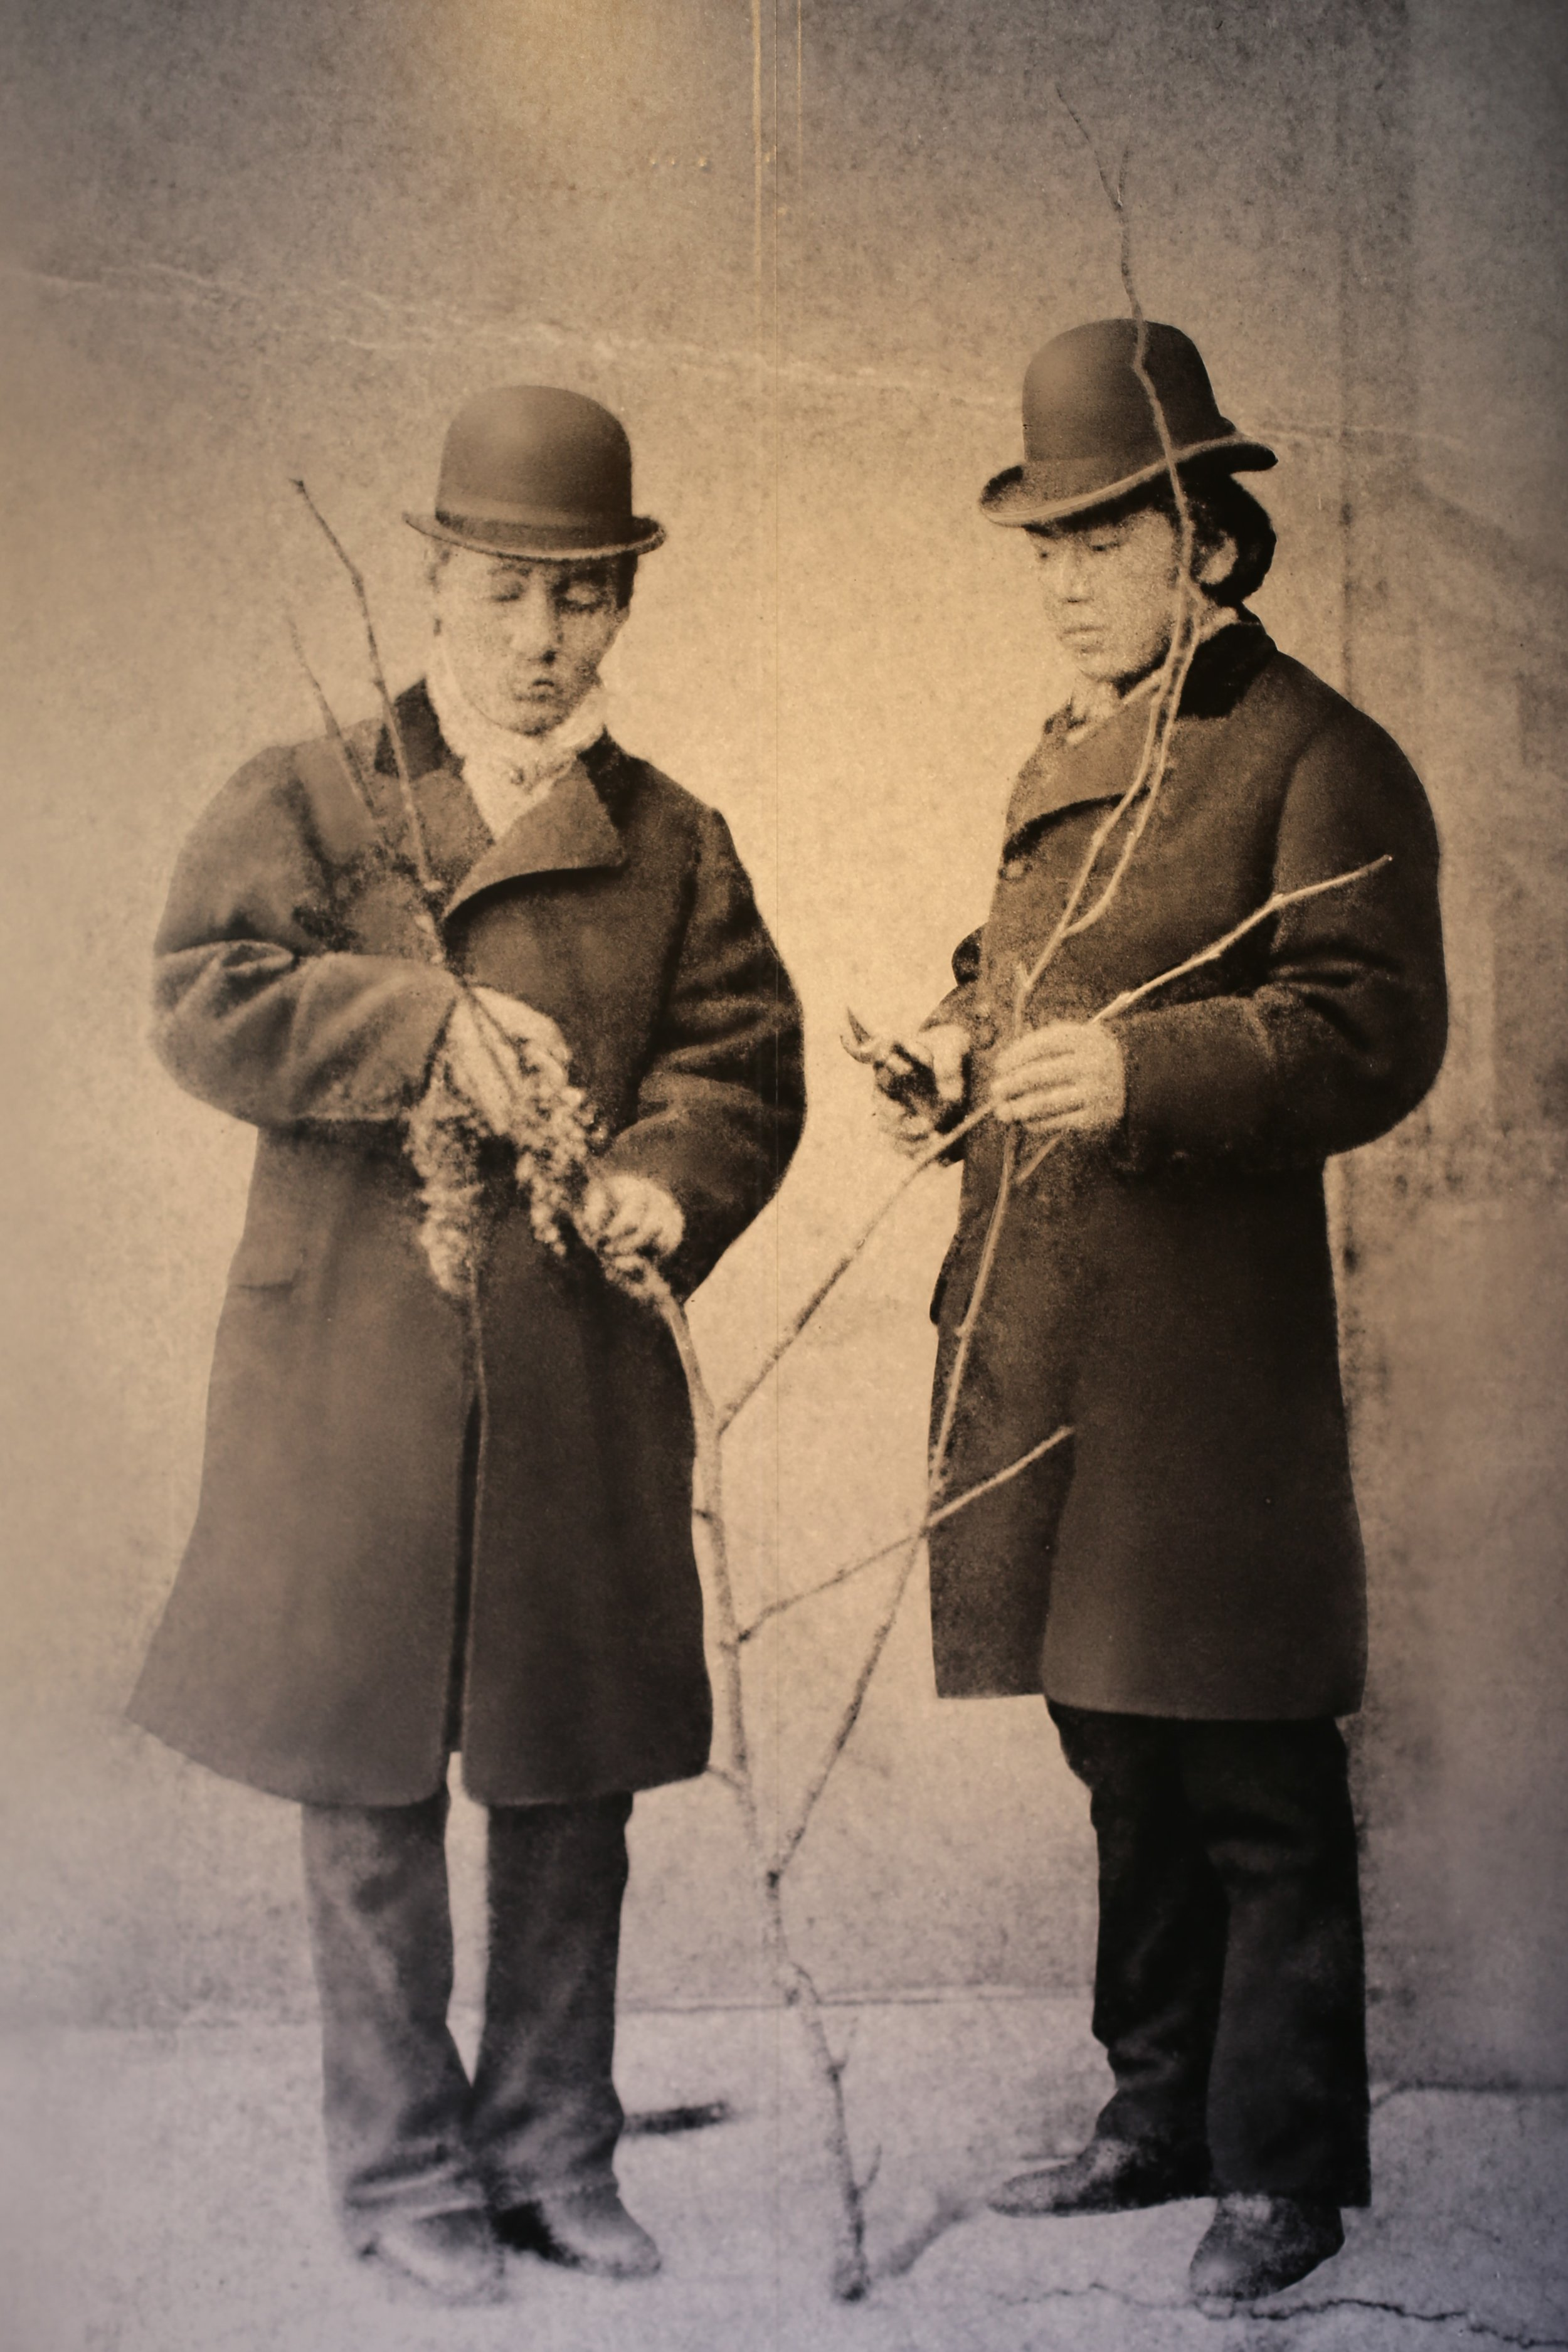 Masanari Takano (L) and Ryuken Tsuchiya (R), pictured in Champagne, France, where they studied winemaking and grape cultivation from October 1877 to March 1879.